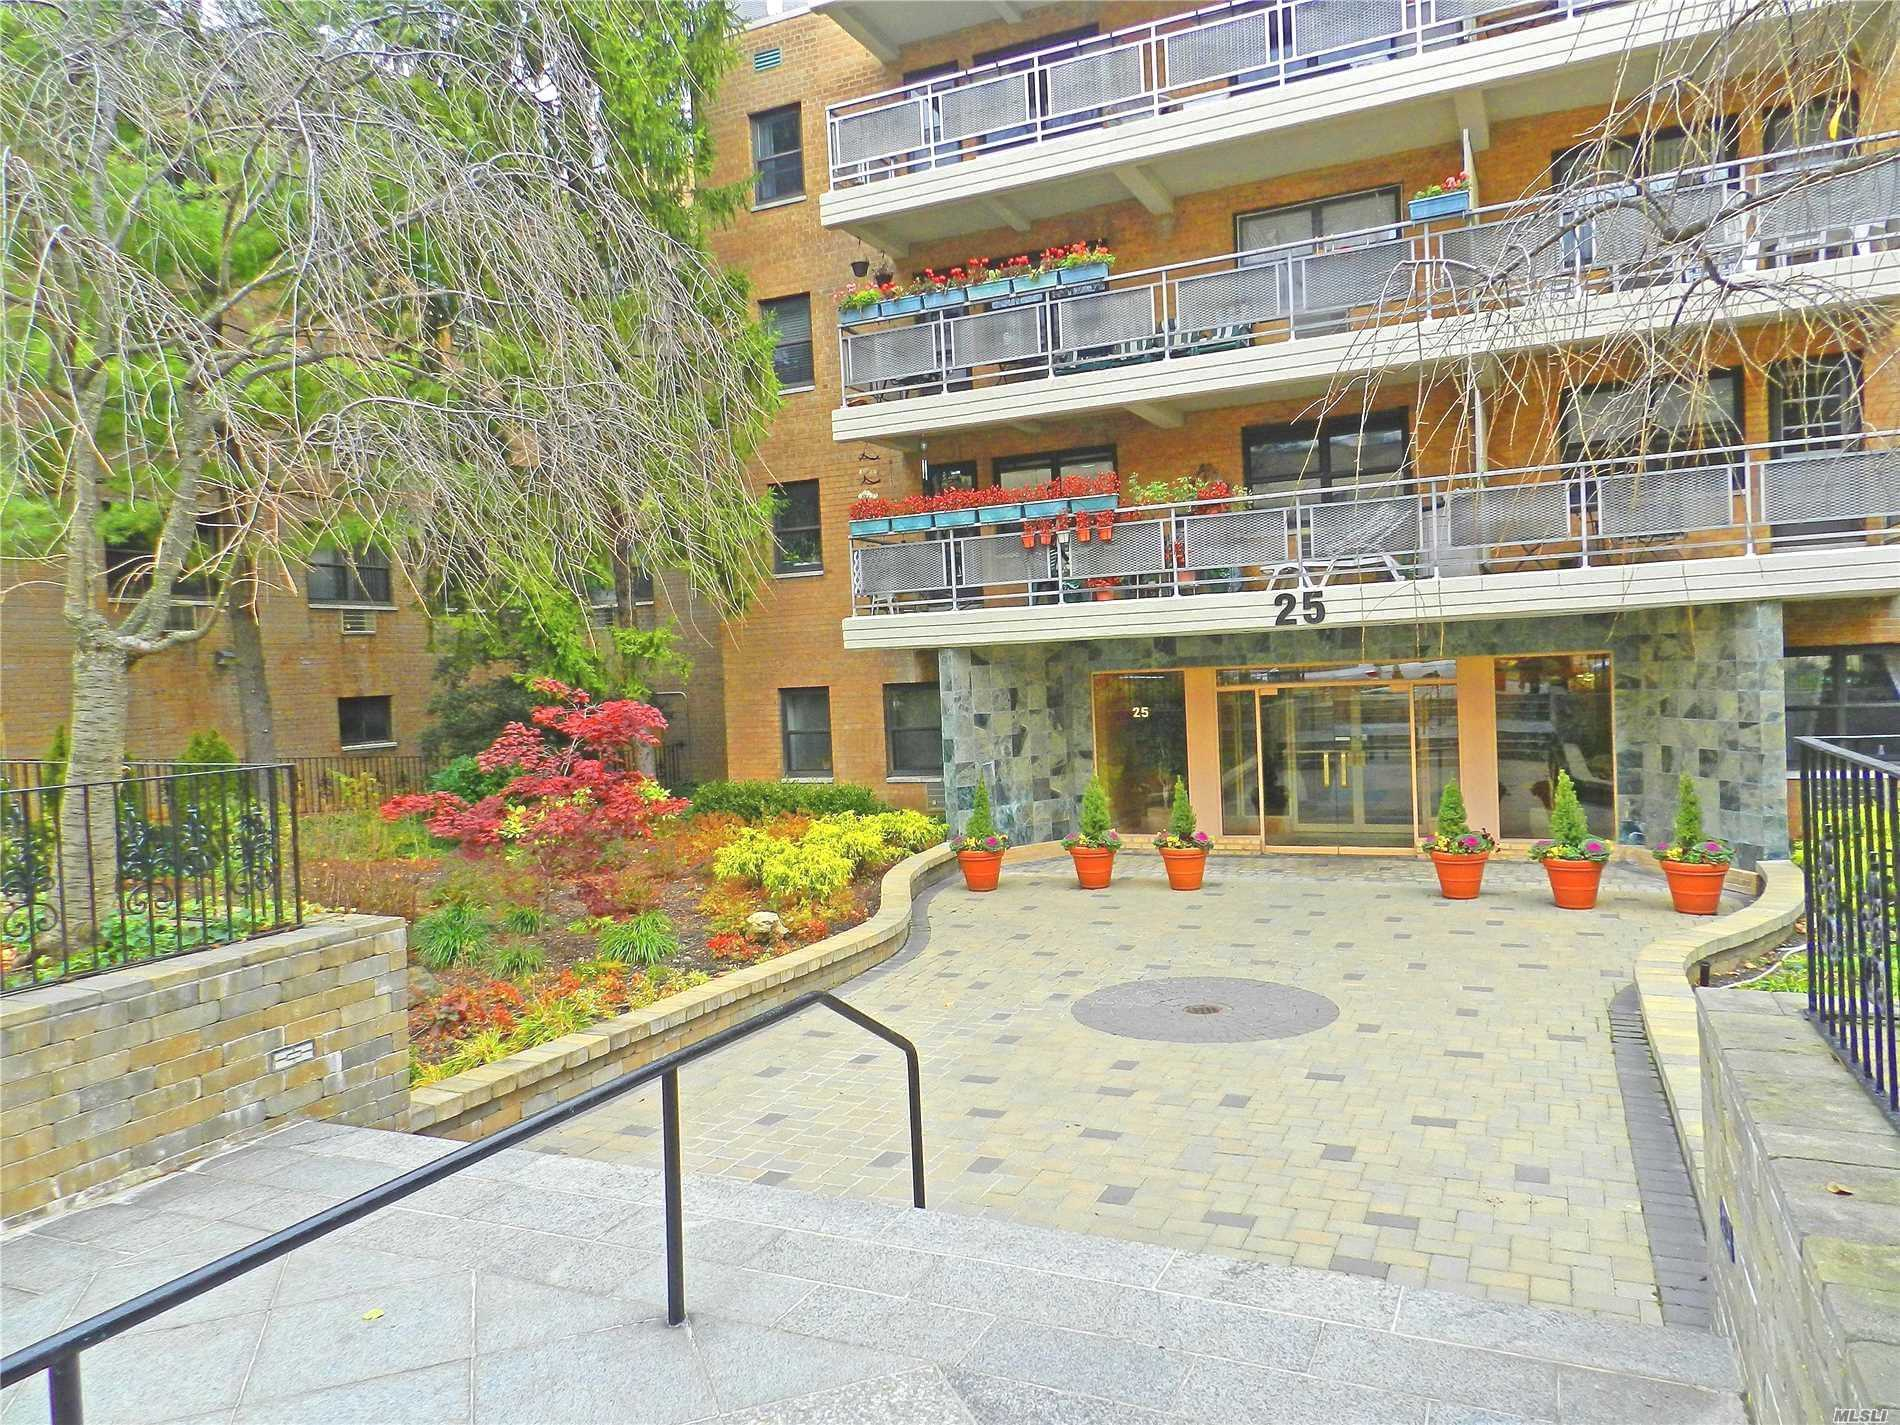 Welcome To This Fabulous Sunny Two Bedroom, Two Bath Co-Op Apartment In The Heart Of Great Neck, Large Living Room With An L Shaped Dining Area. A Large Terrace Overlooks Grace Ave Park. This Unit Comes With A Parking Space. Near Long Island Railroad,  Town, Park, Stores And Parkwood Pool And Tennis.